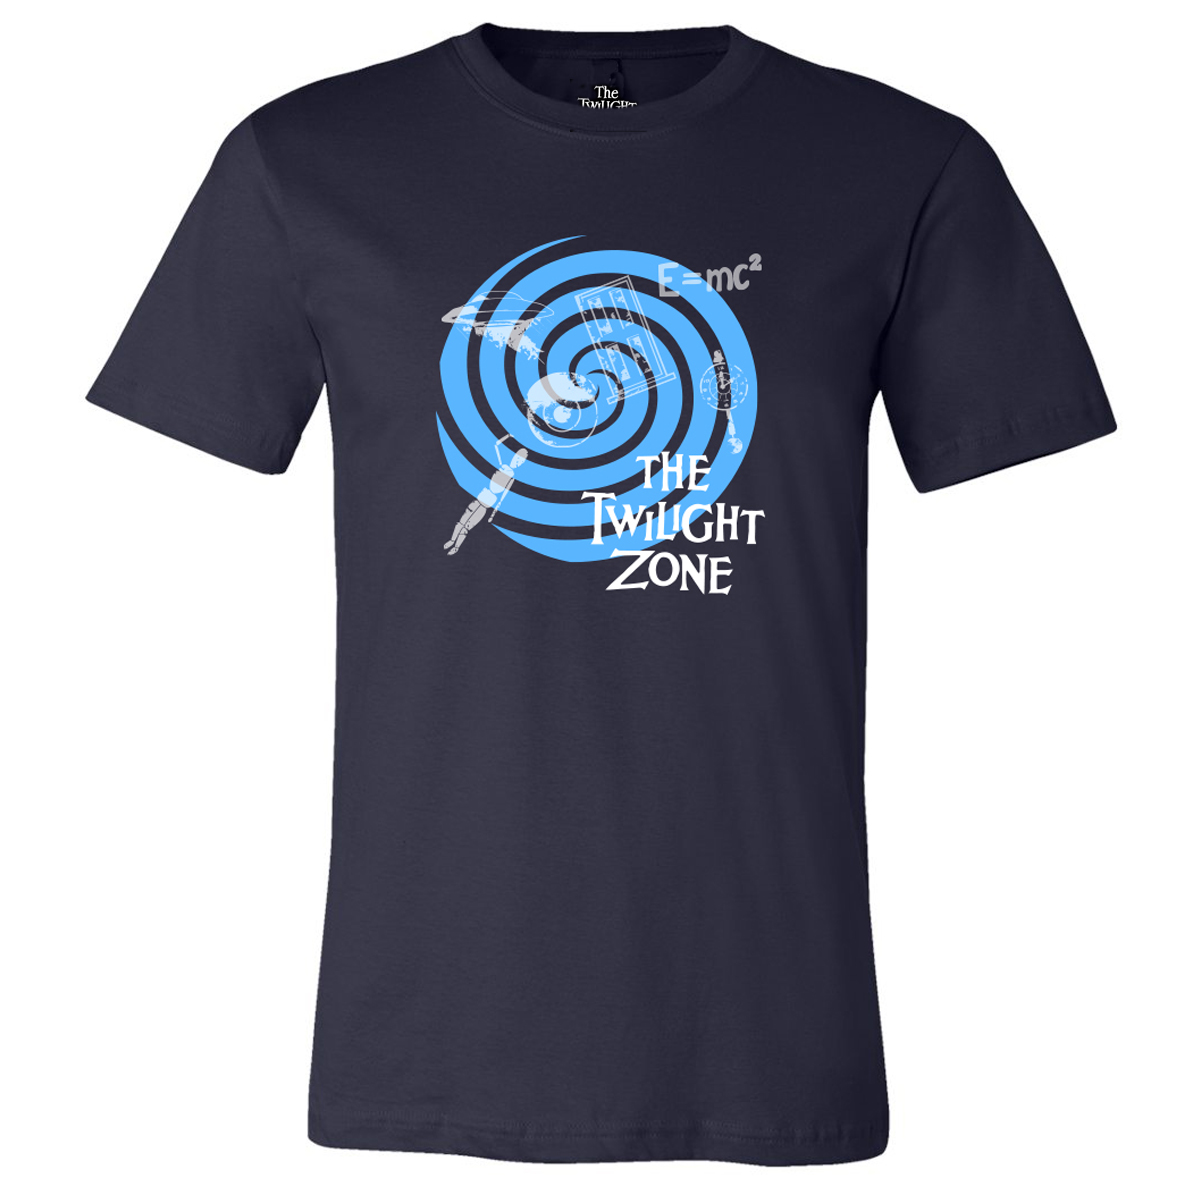 The Twilight Zone Collage T-Shirt